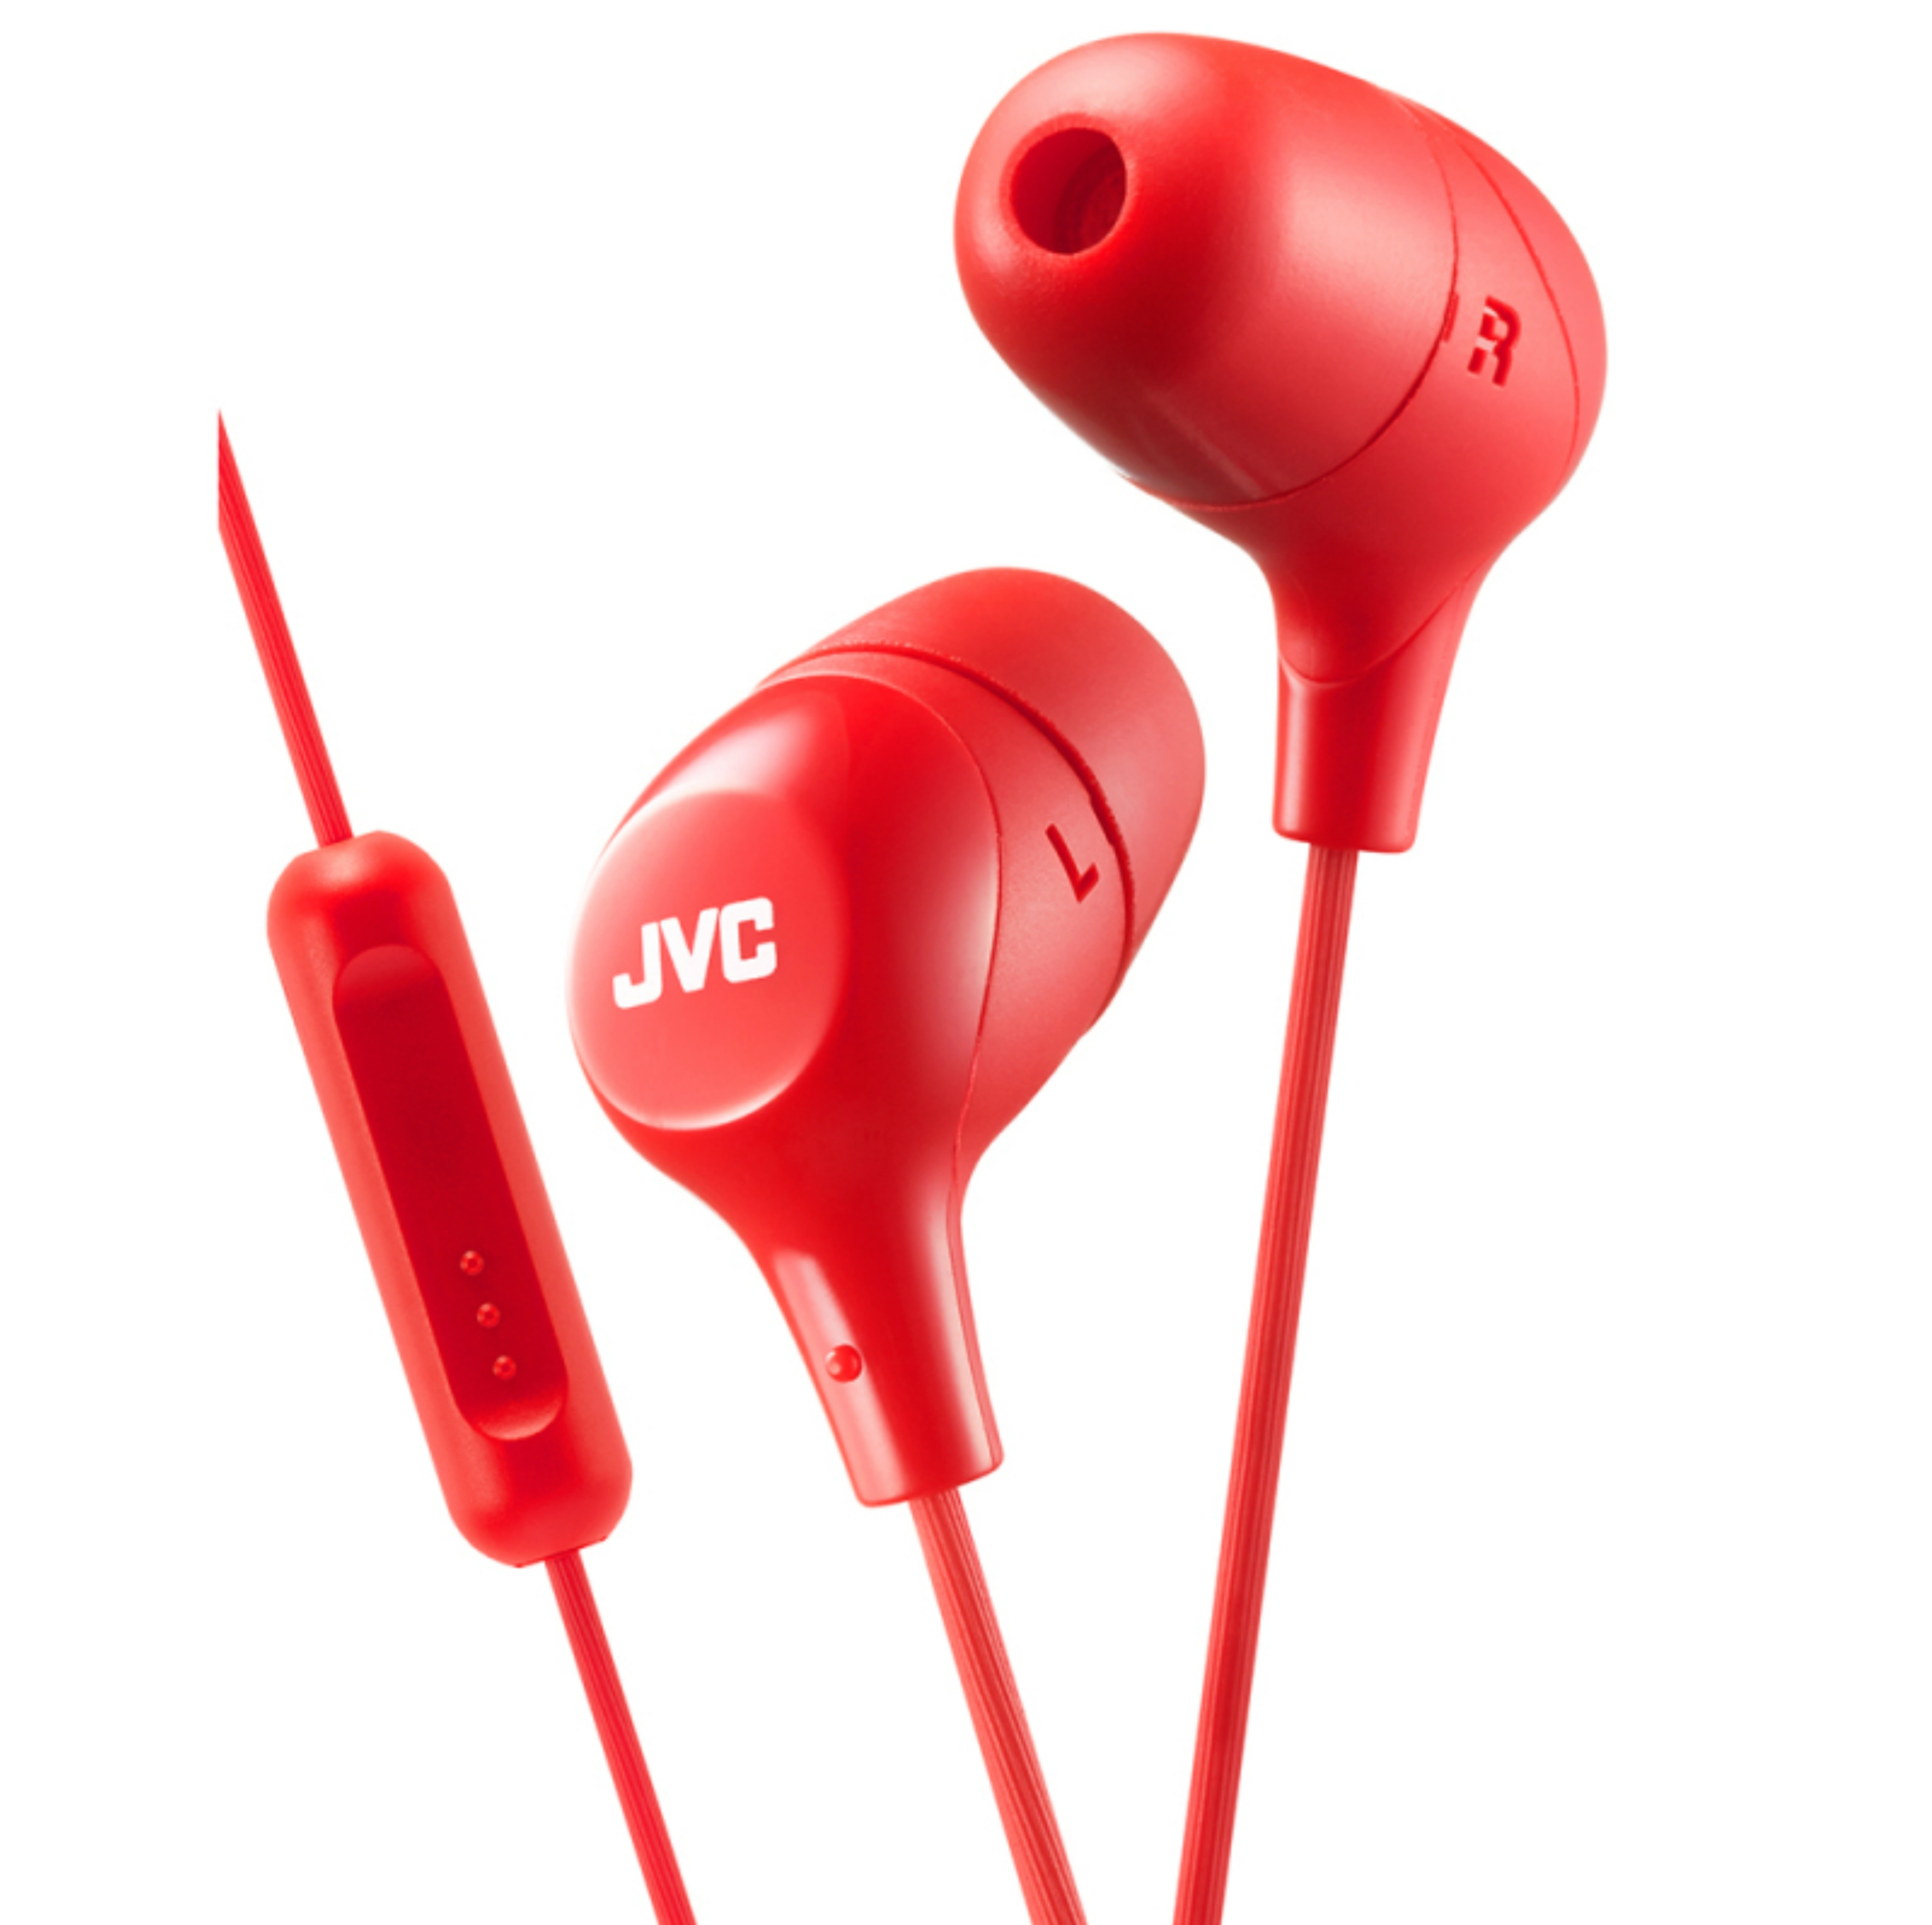 JVC HAFX38MR New Marshmallow Headphones|Custom Fit|In Ear|Remote & Mic|Red|